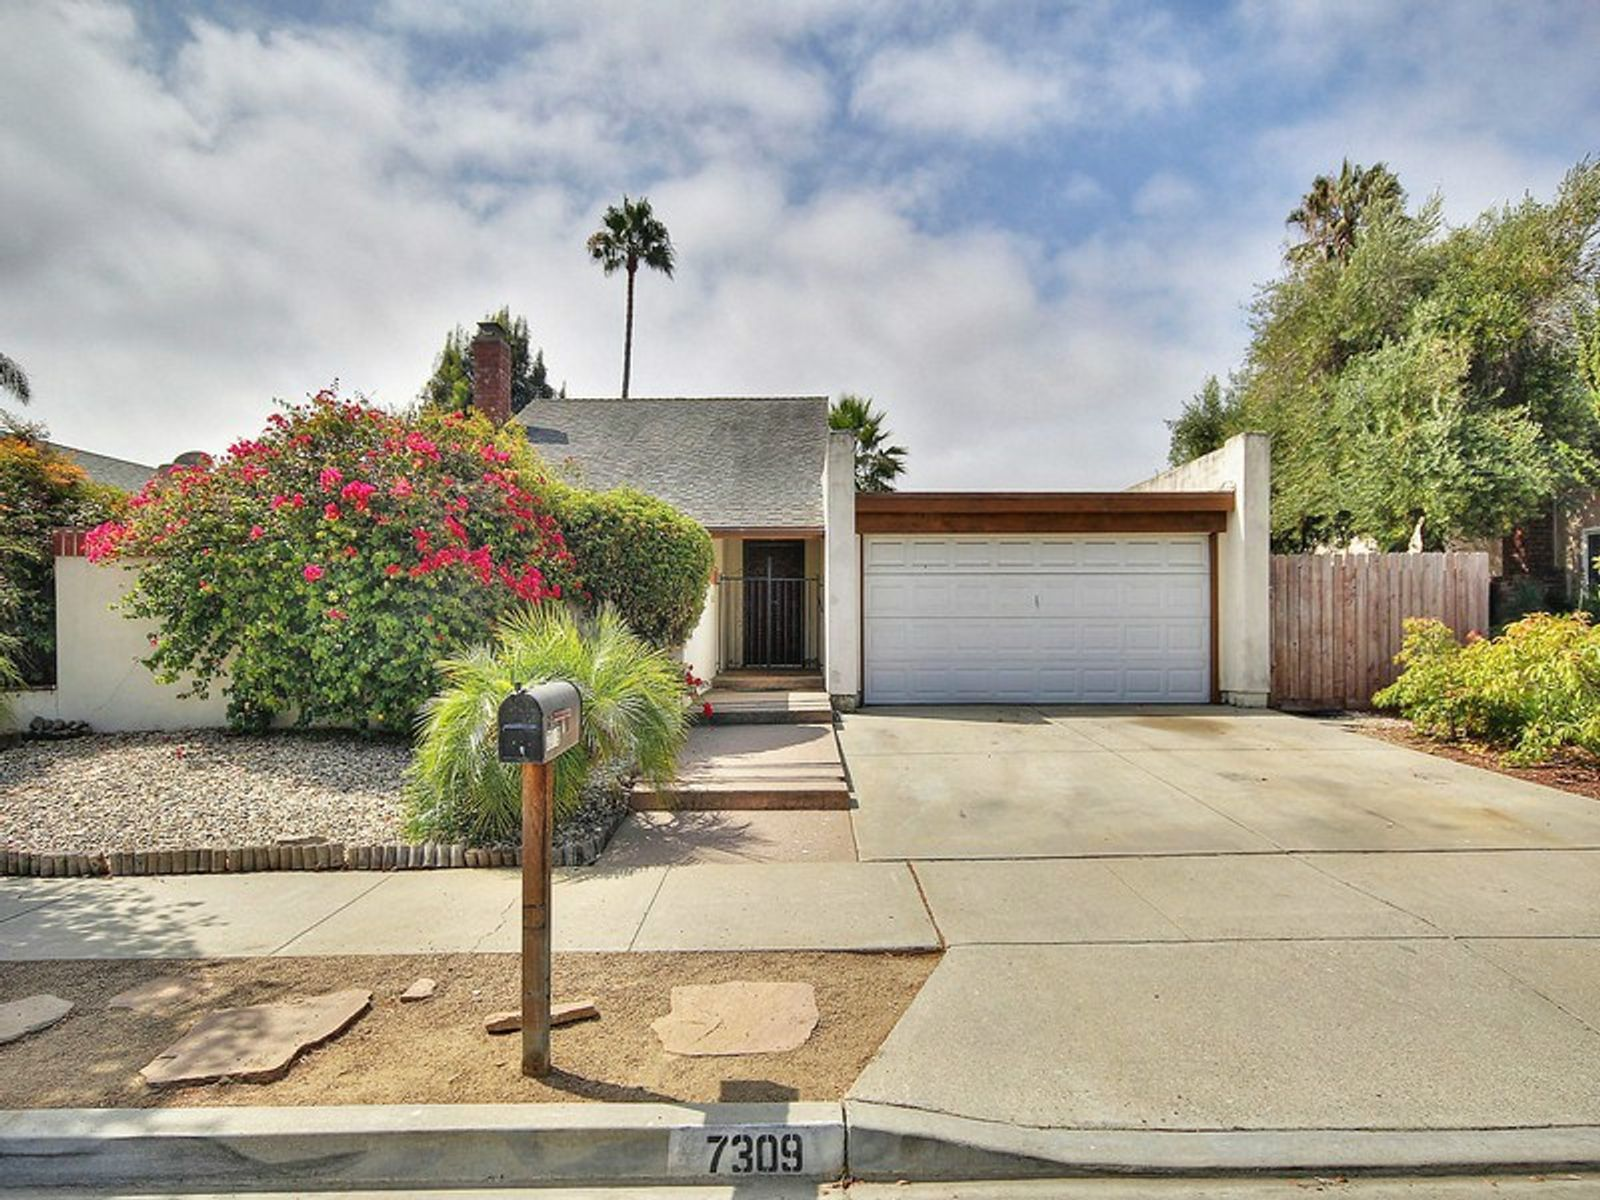 Charming Modern-Style Home, Goleta CA Single Family Home - Santa Barbara Real Estate